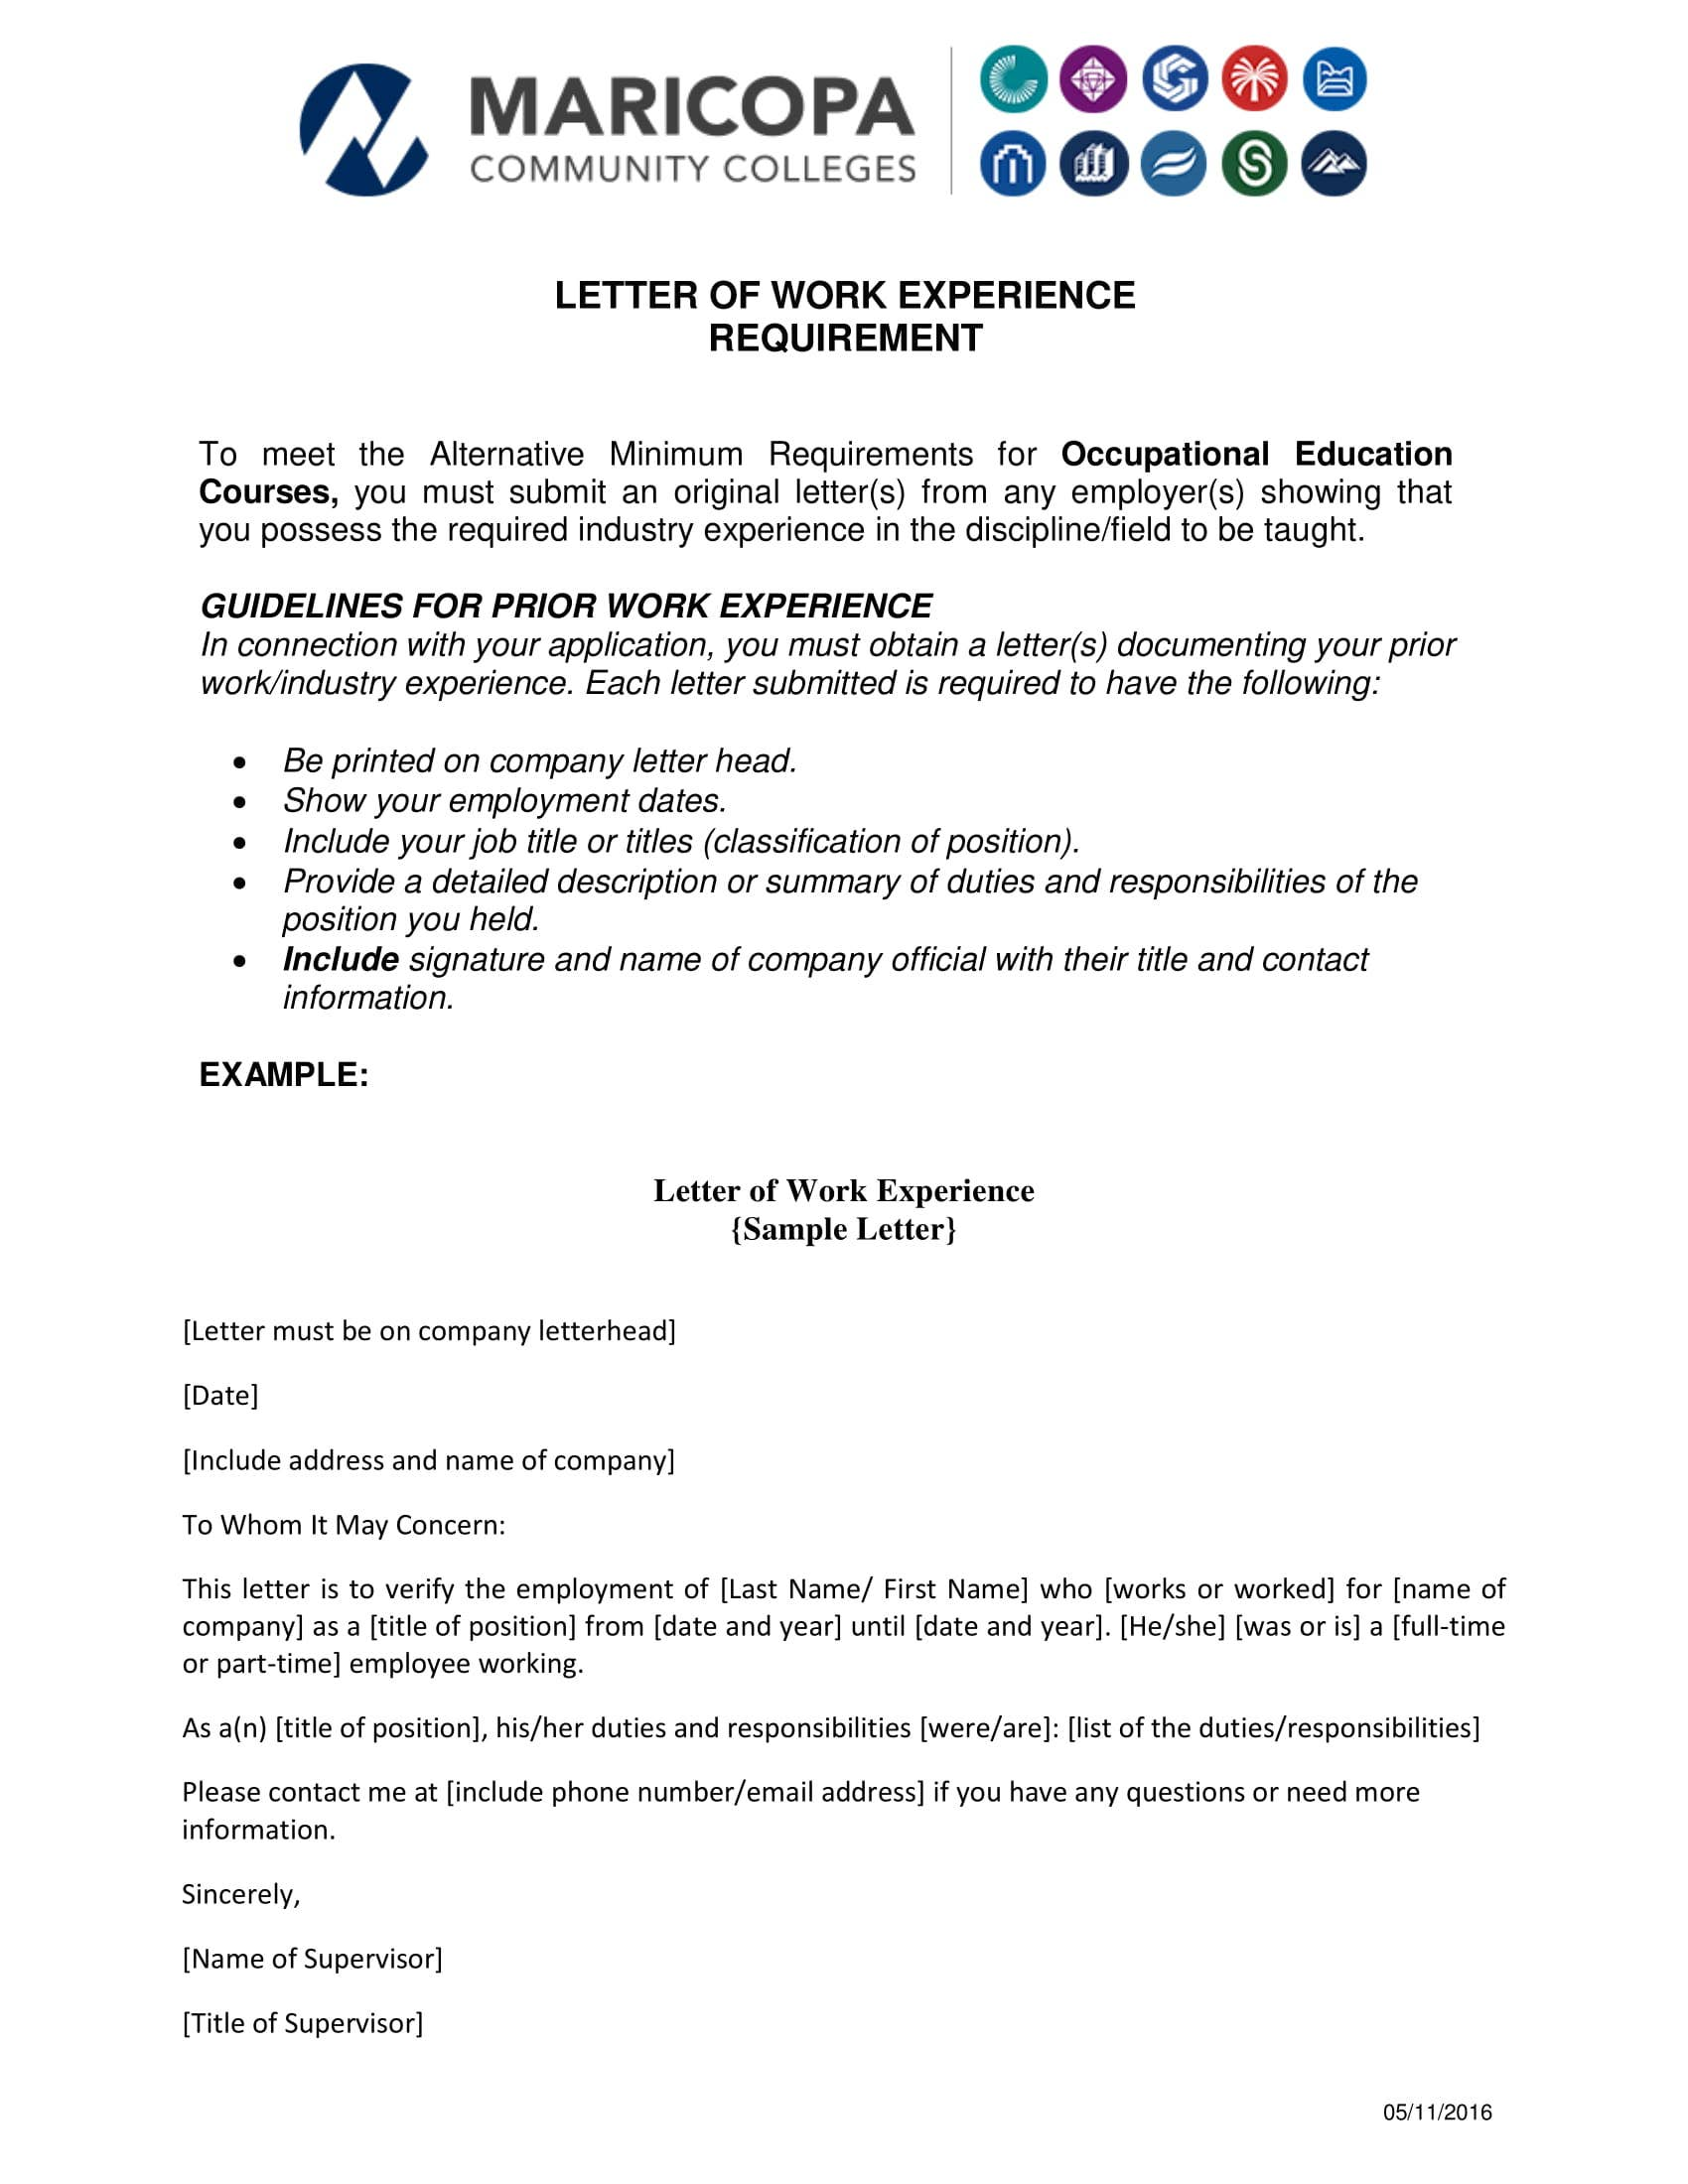 letter of work experience template